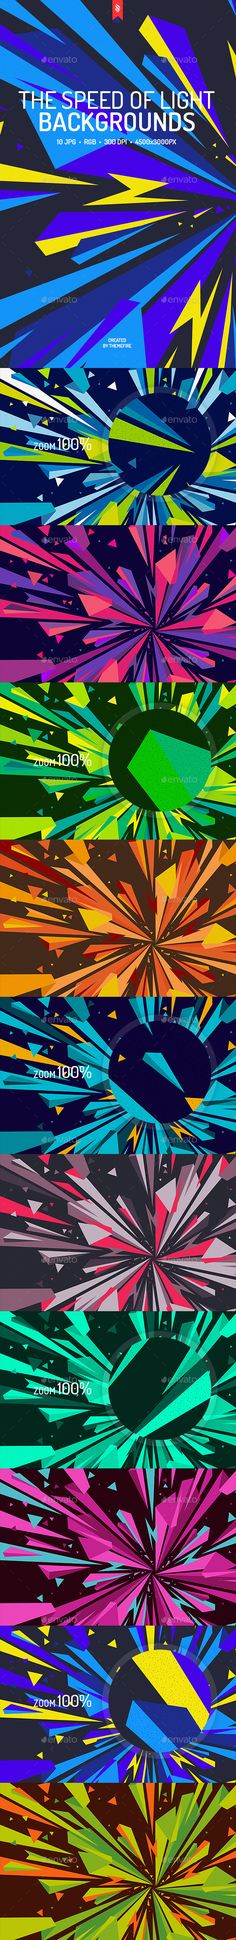 The Speed of Light Backgrounds by themefire This pack contains 10 jpg abstract flat speed of light backgrounds for your projects. You can use these backgrounds in the differe